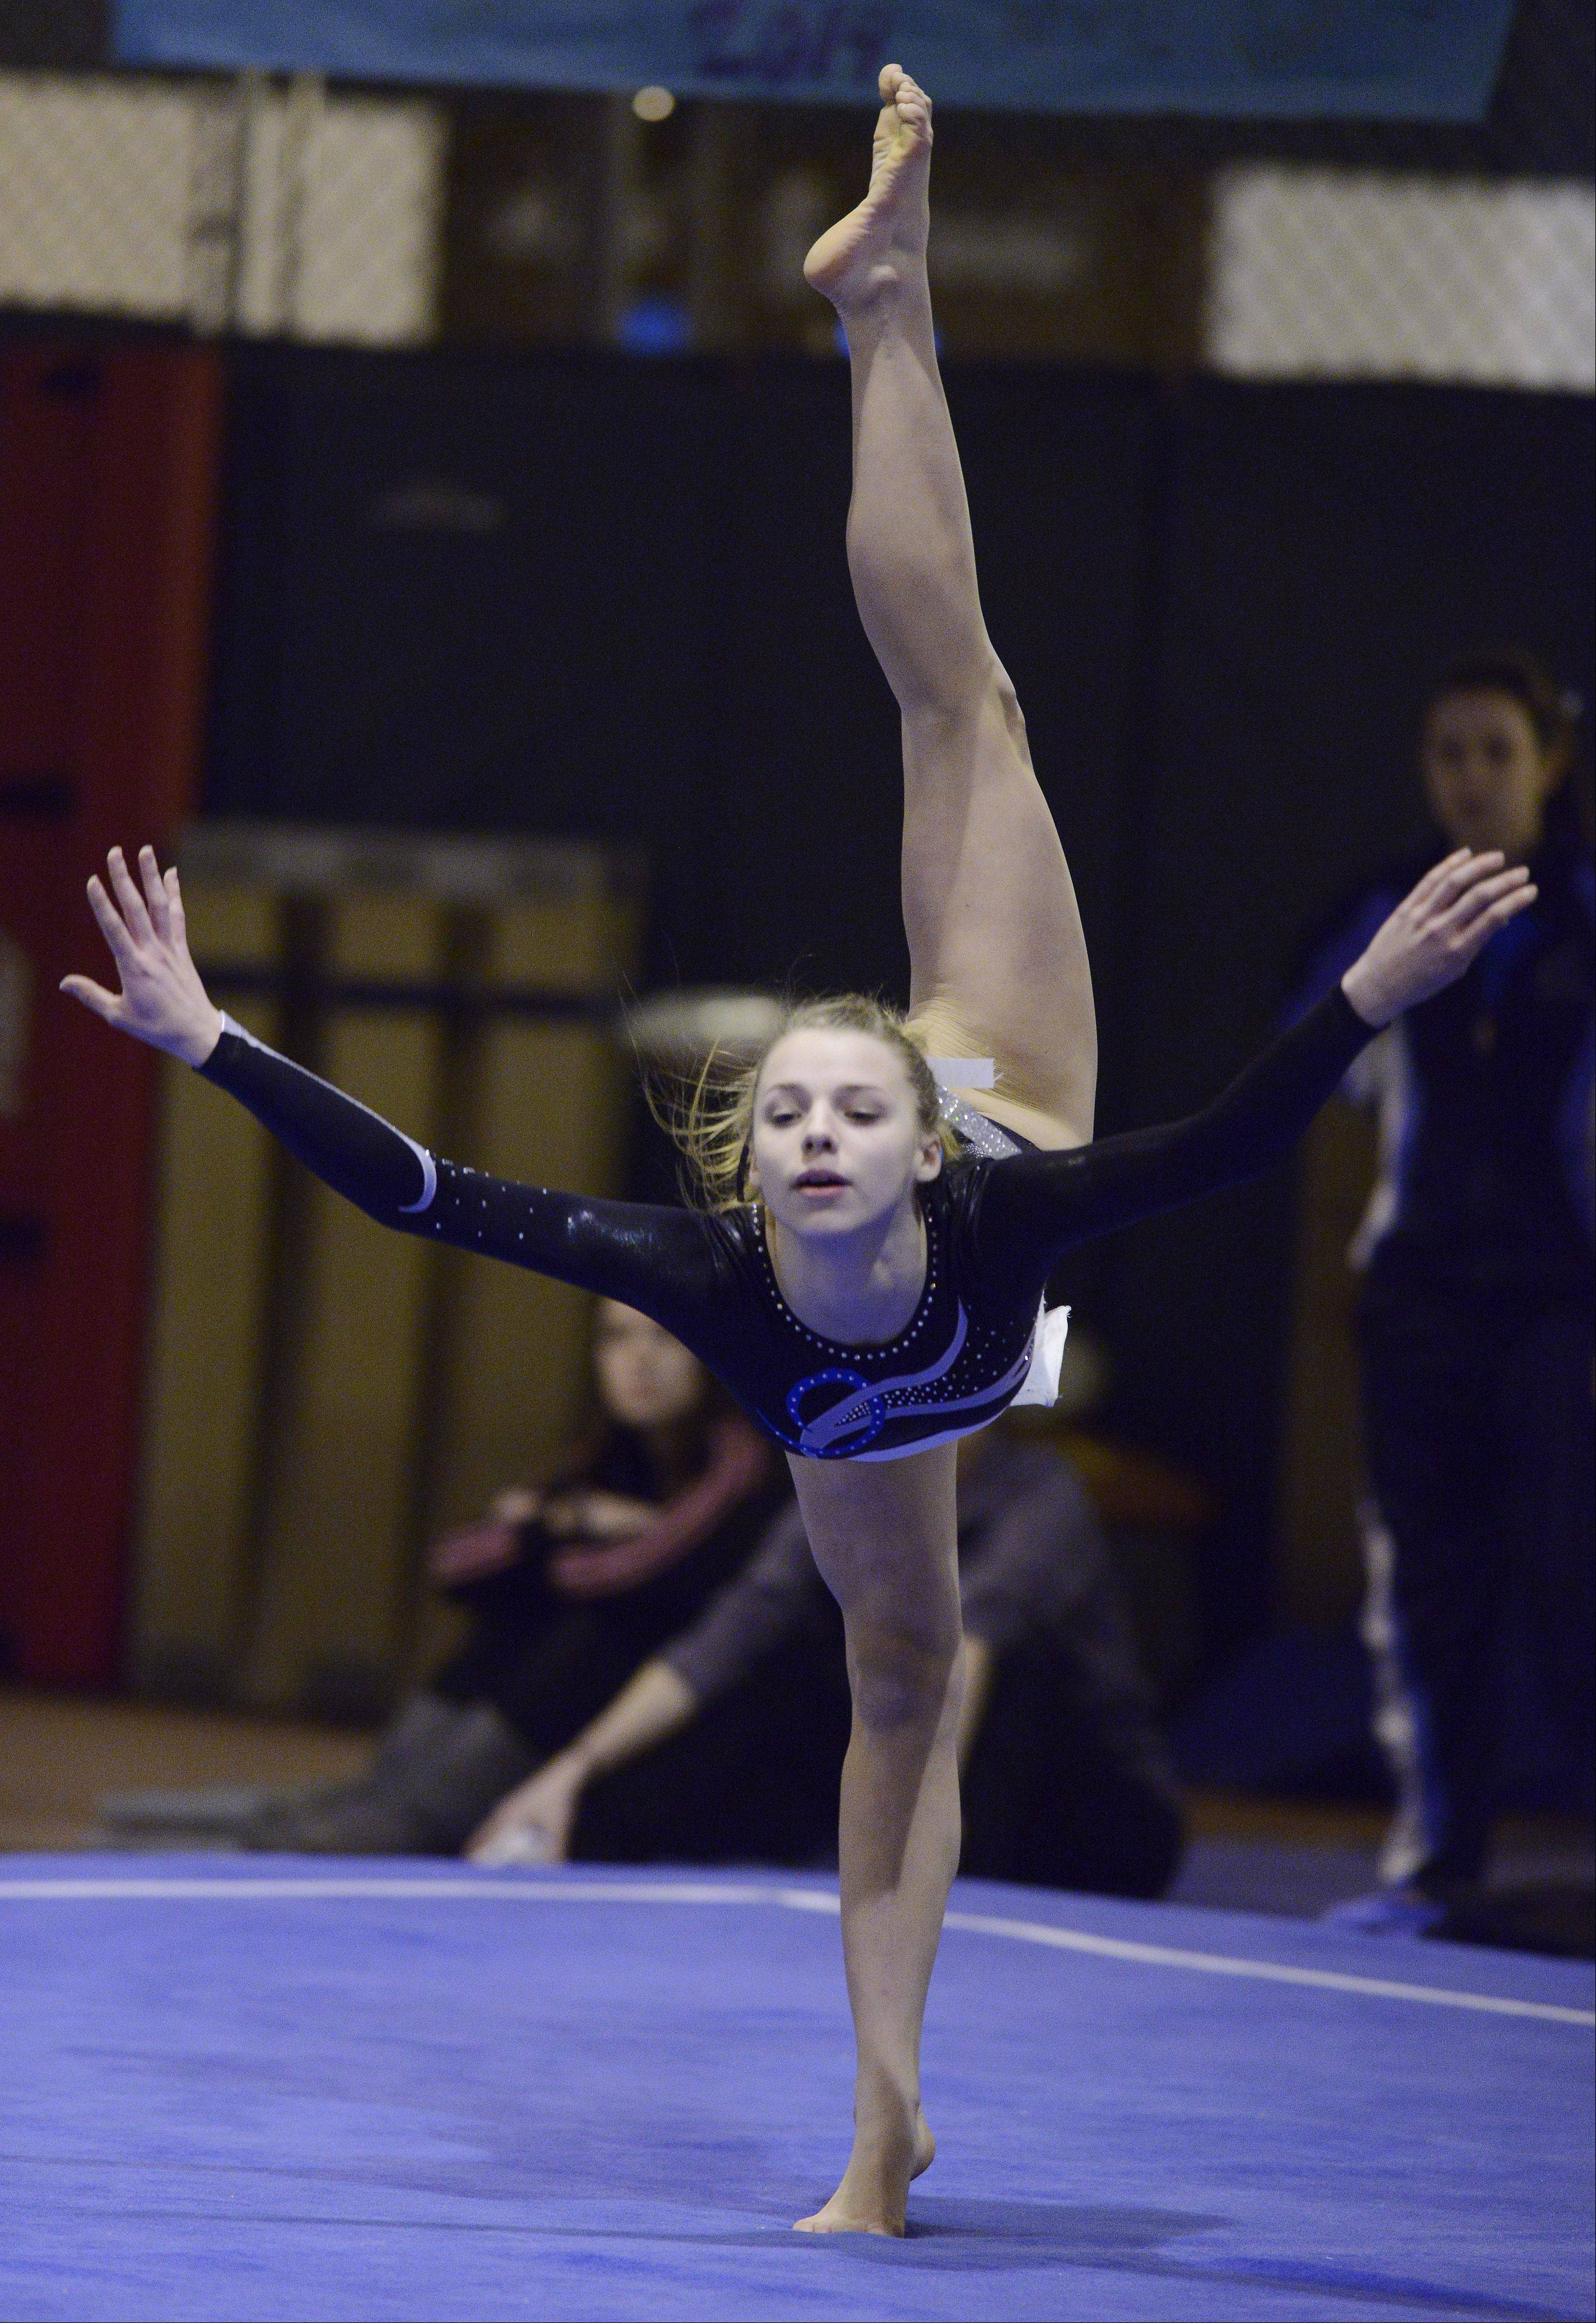 Prospect�s Olivia Gonzalez competes on the floor exercise during Wednesday�s meet with Buffalo Grove and host Elk Grove.